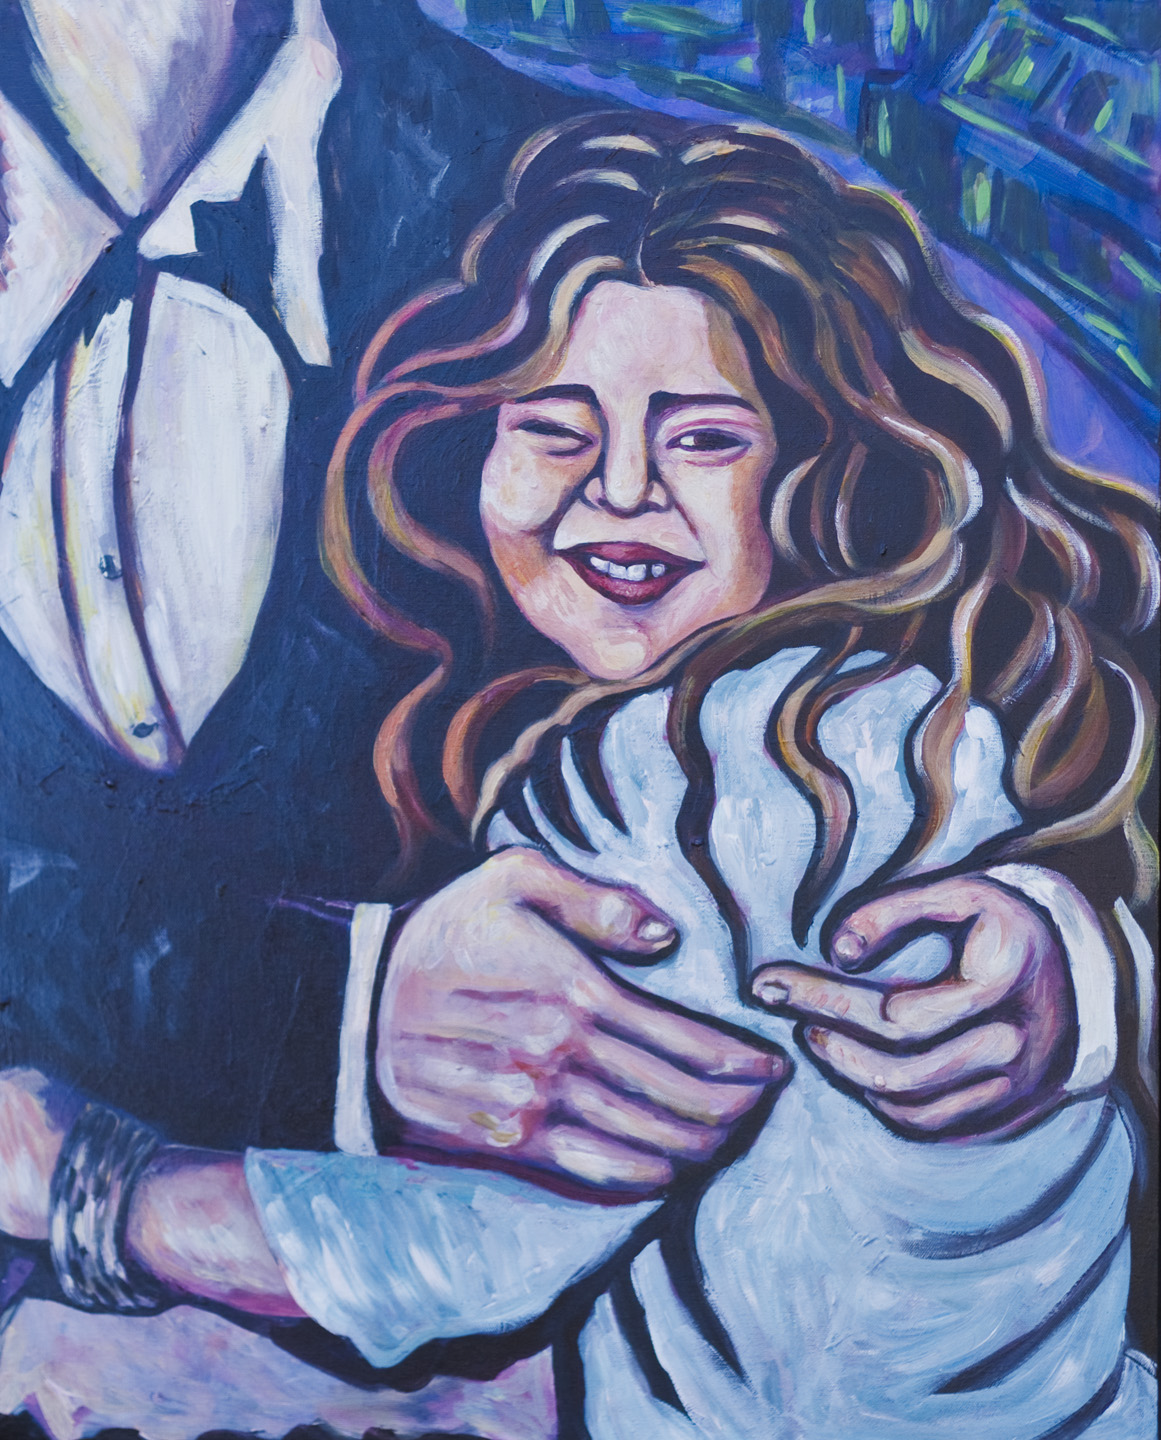 Basha Goldwater / February 21, 2011 / 24 x 30 Acrylic Painting on Canvas by Gretchen Seichrist